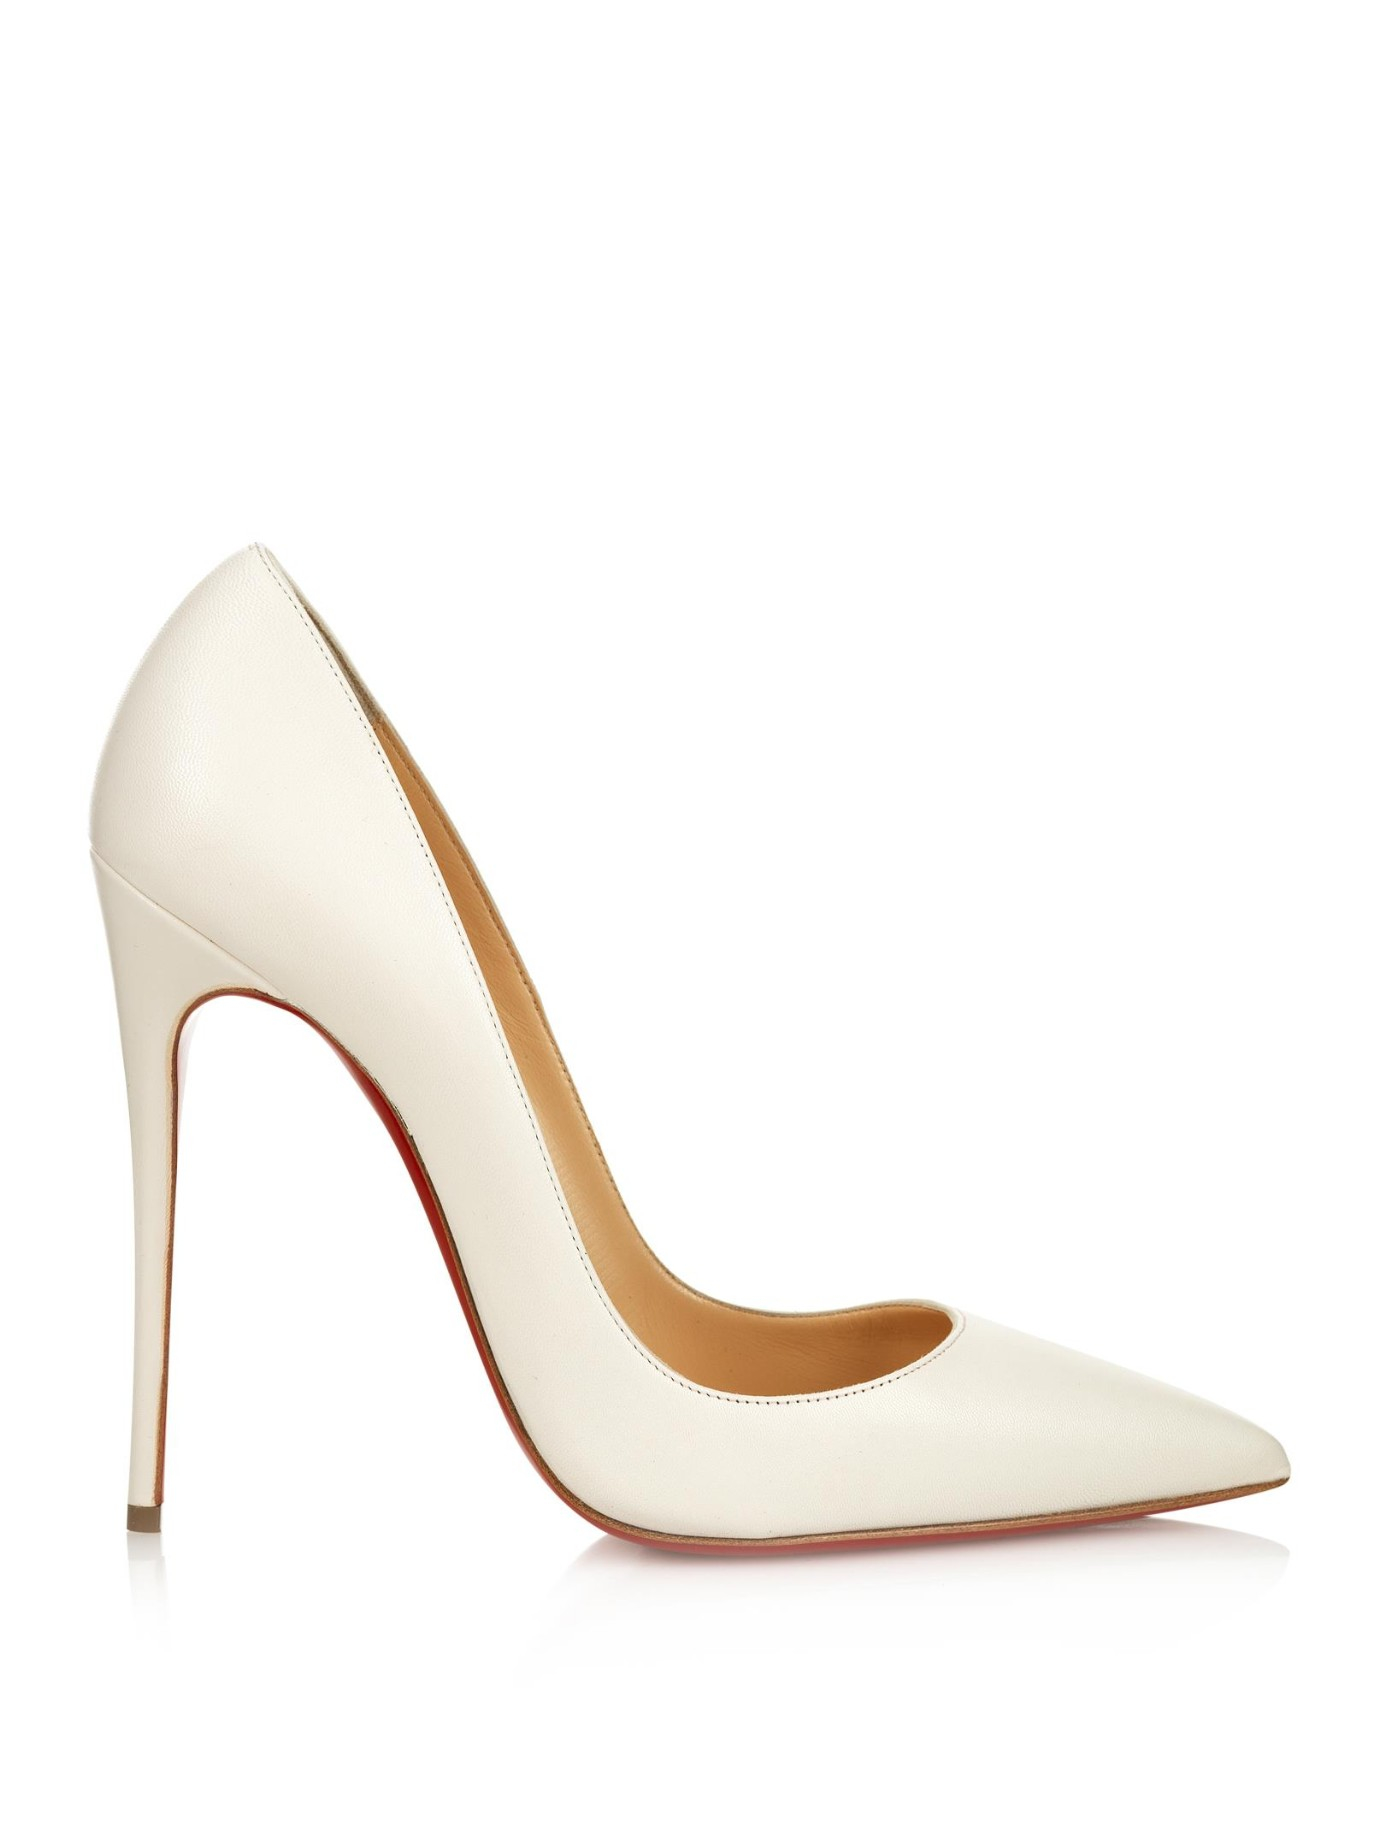 f2e8d471bd0b Gallery. Previously sold at  MATCHESFASHION.COM · Women s Christian  Louboutin So Kate